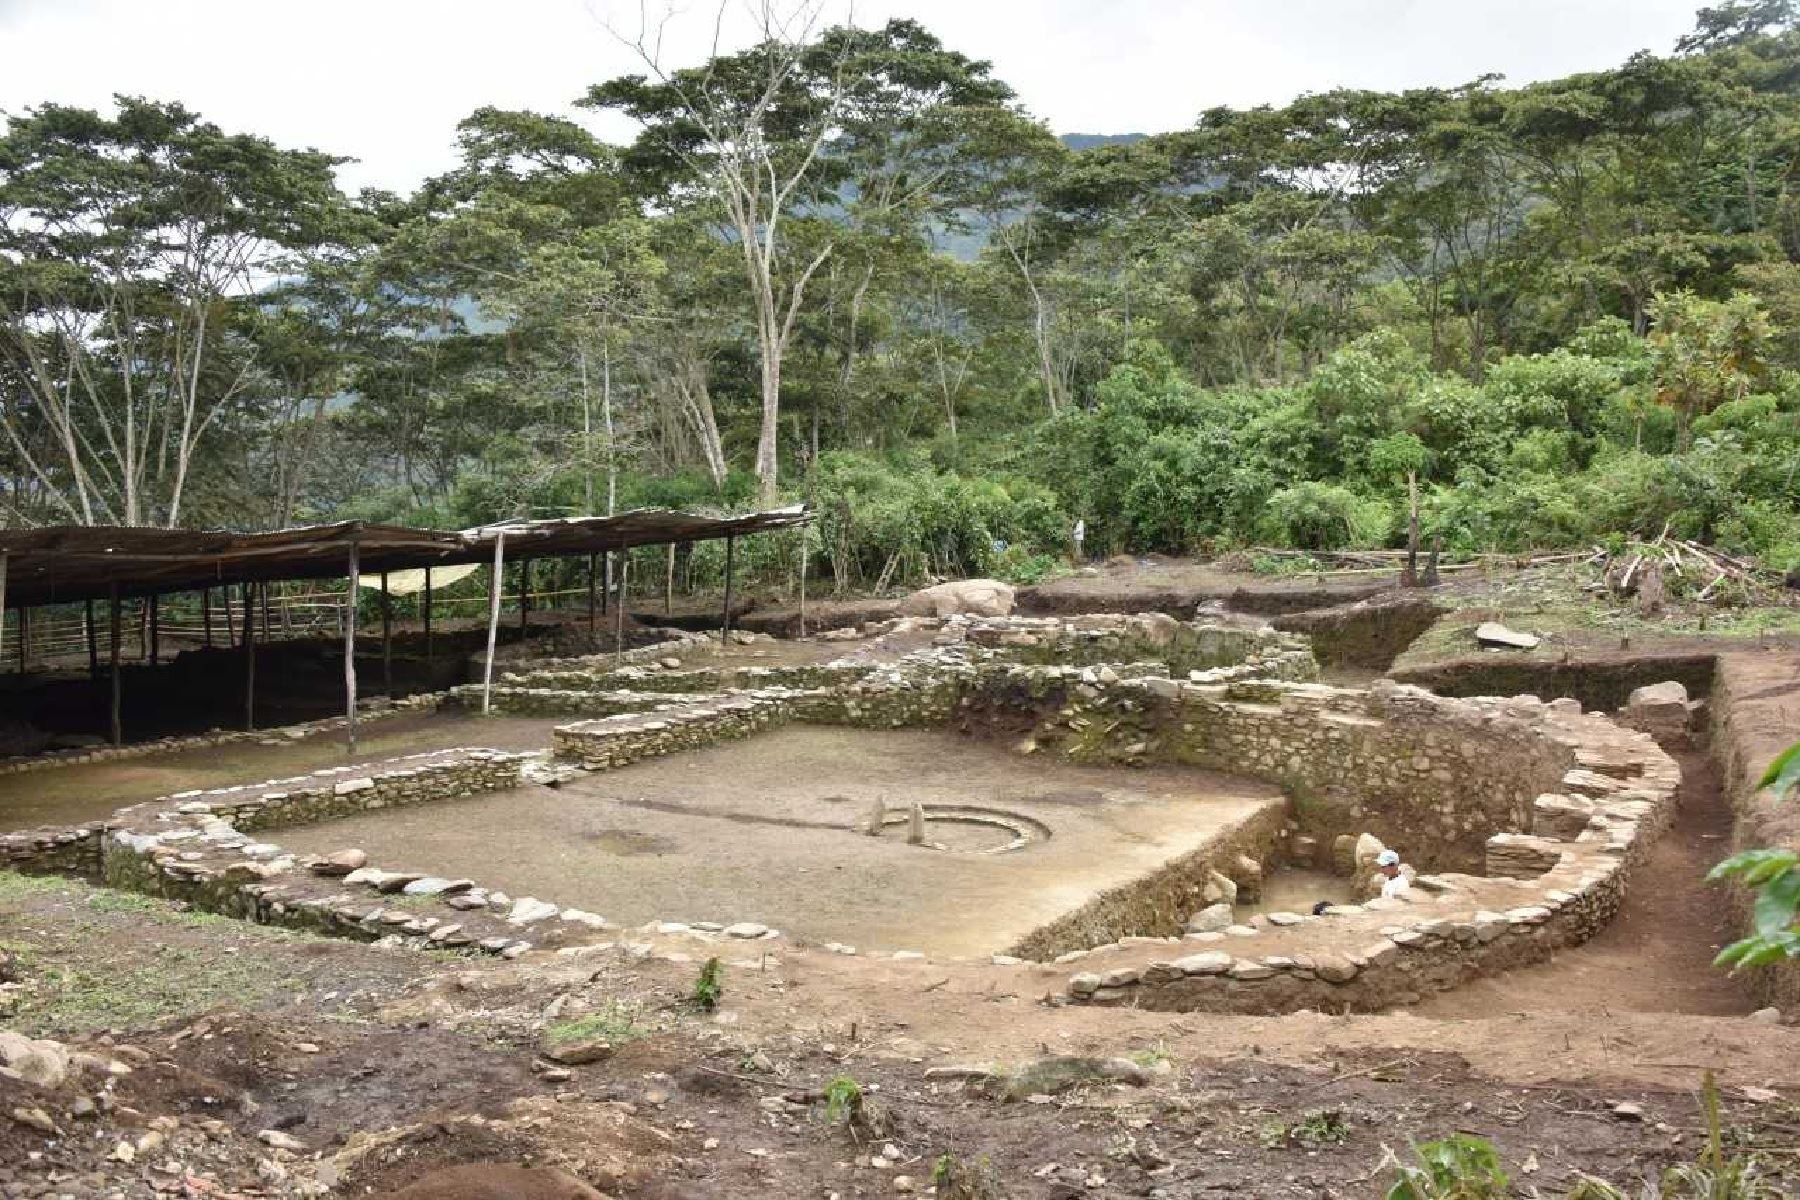 Peru: Ancient astronomical observatory found in Cusco